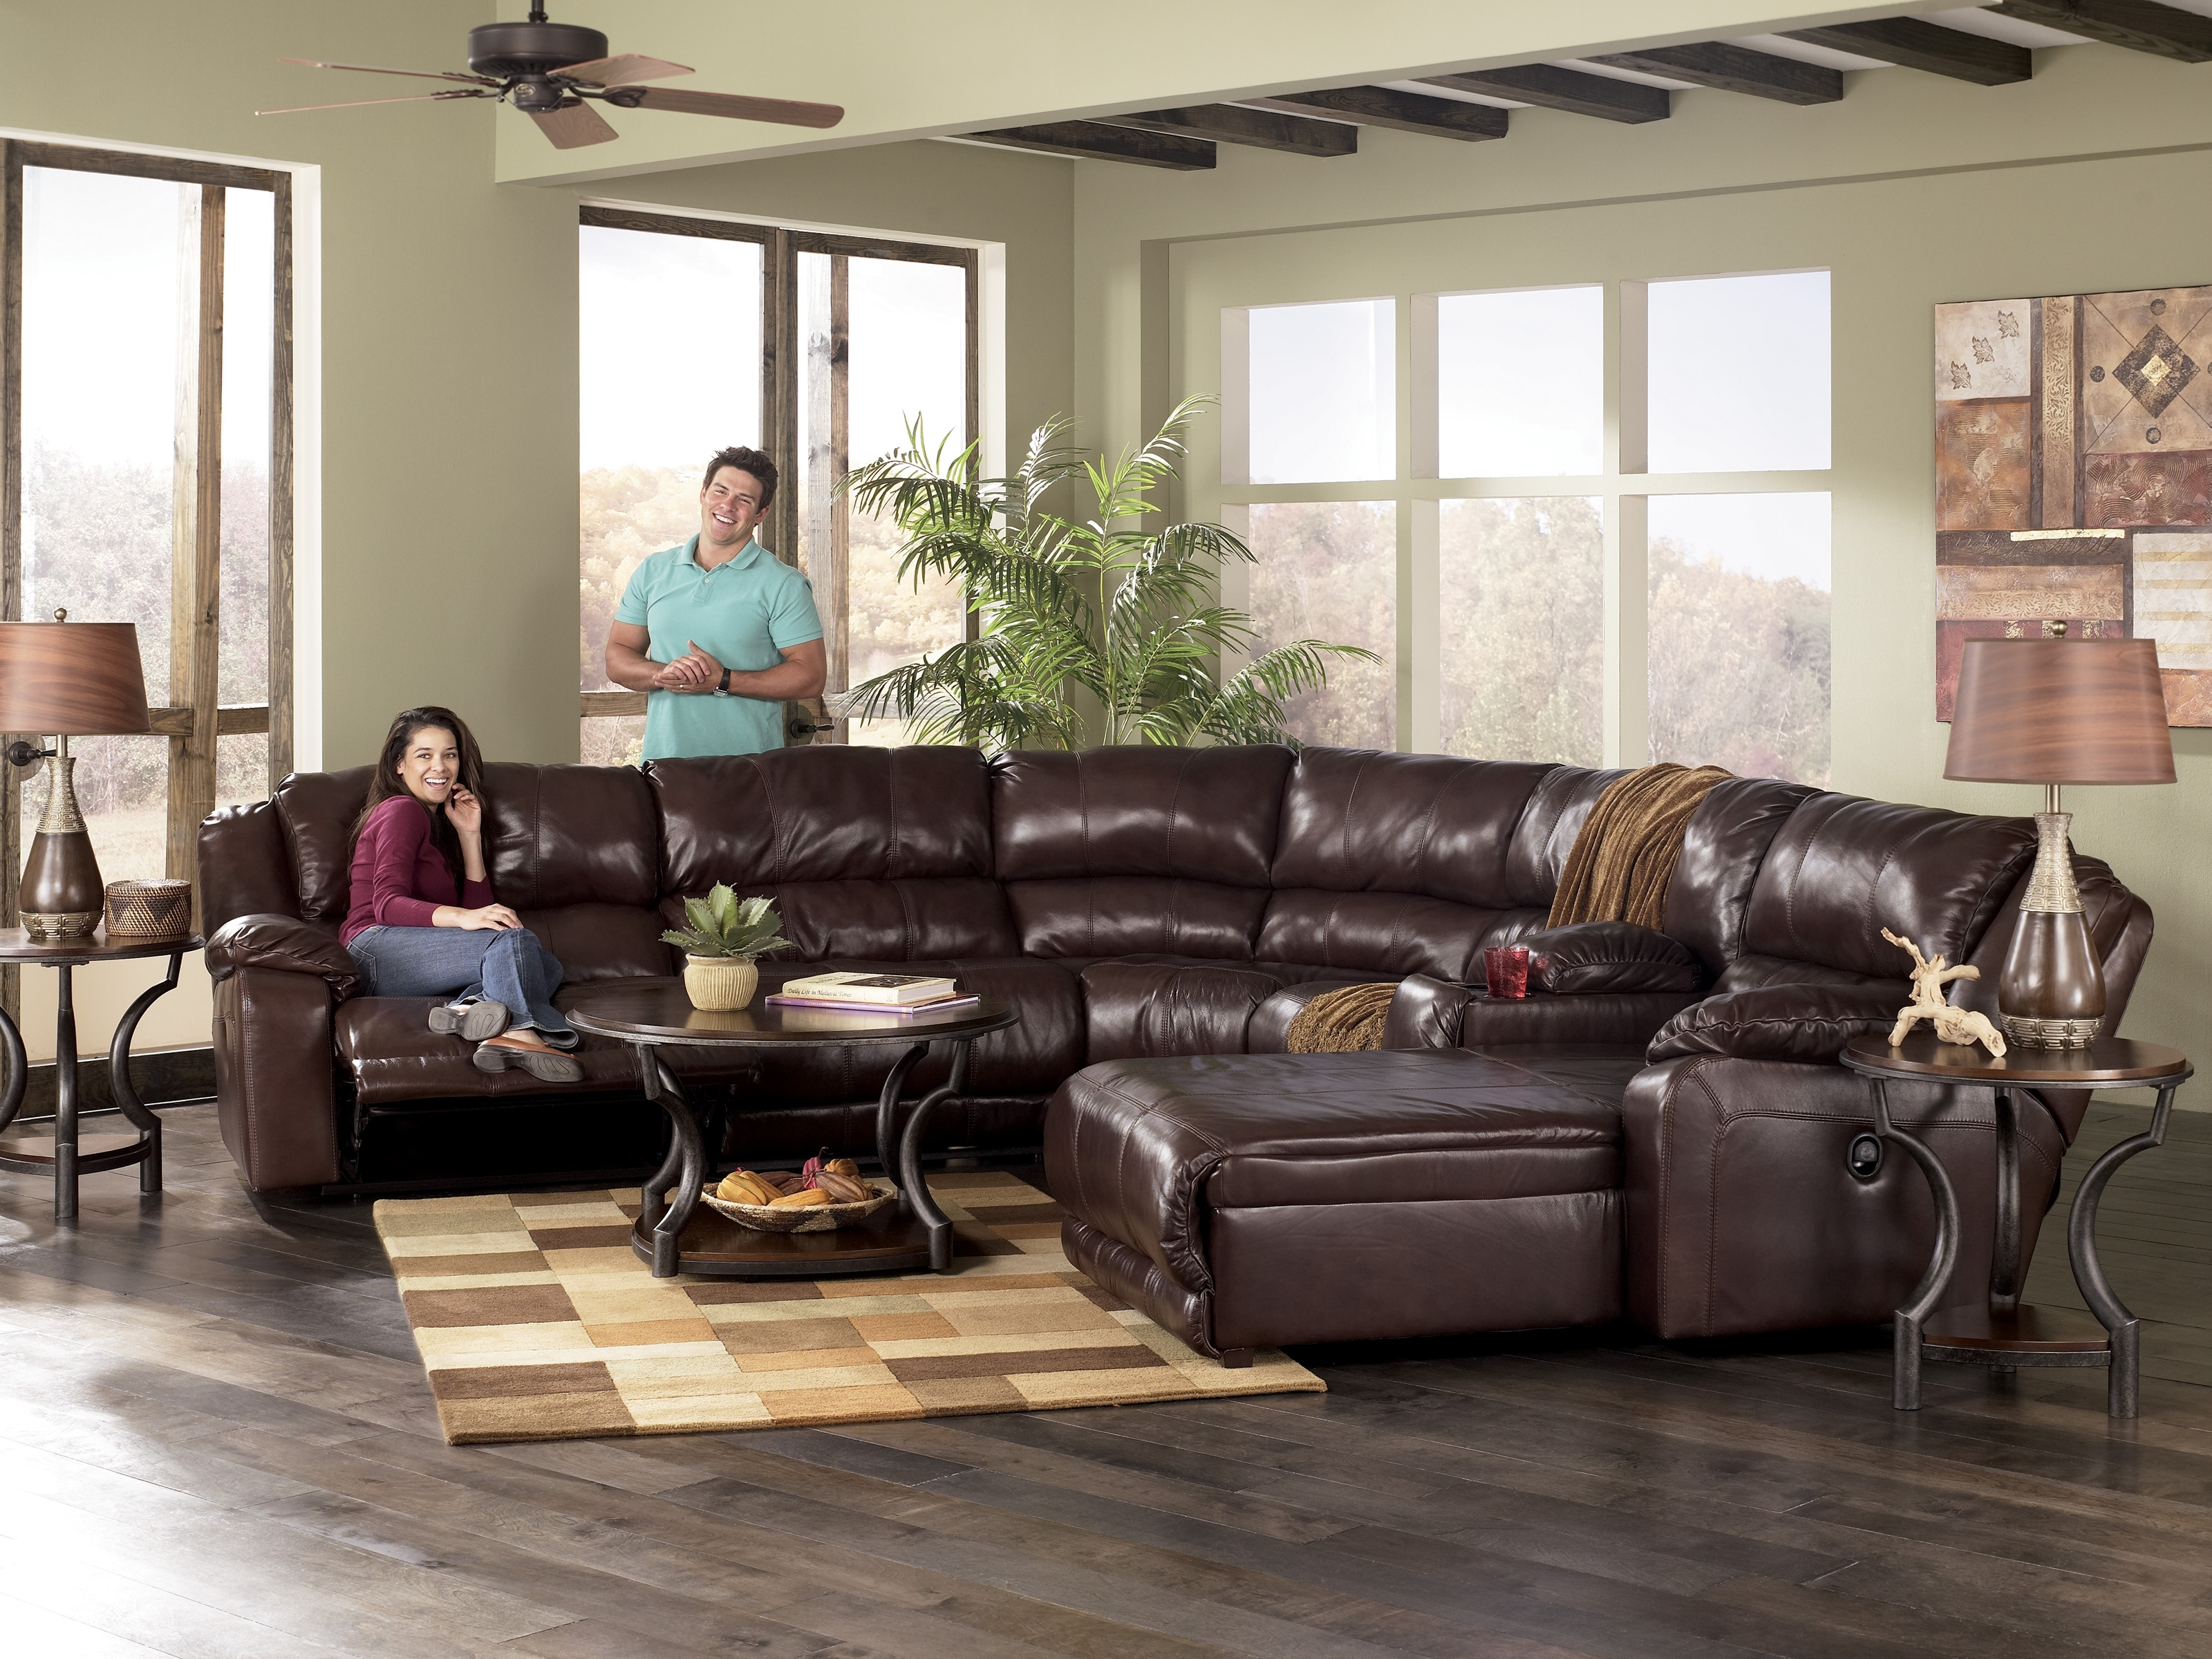 Top Stock Of Ashleyfurniture Com Sofas 13137 – Sofa Ideas Within Sectional Sofas In Stock (View 10 of 10)